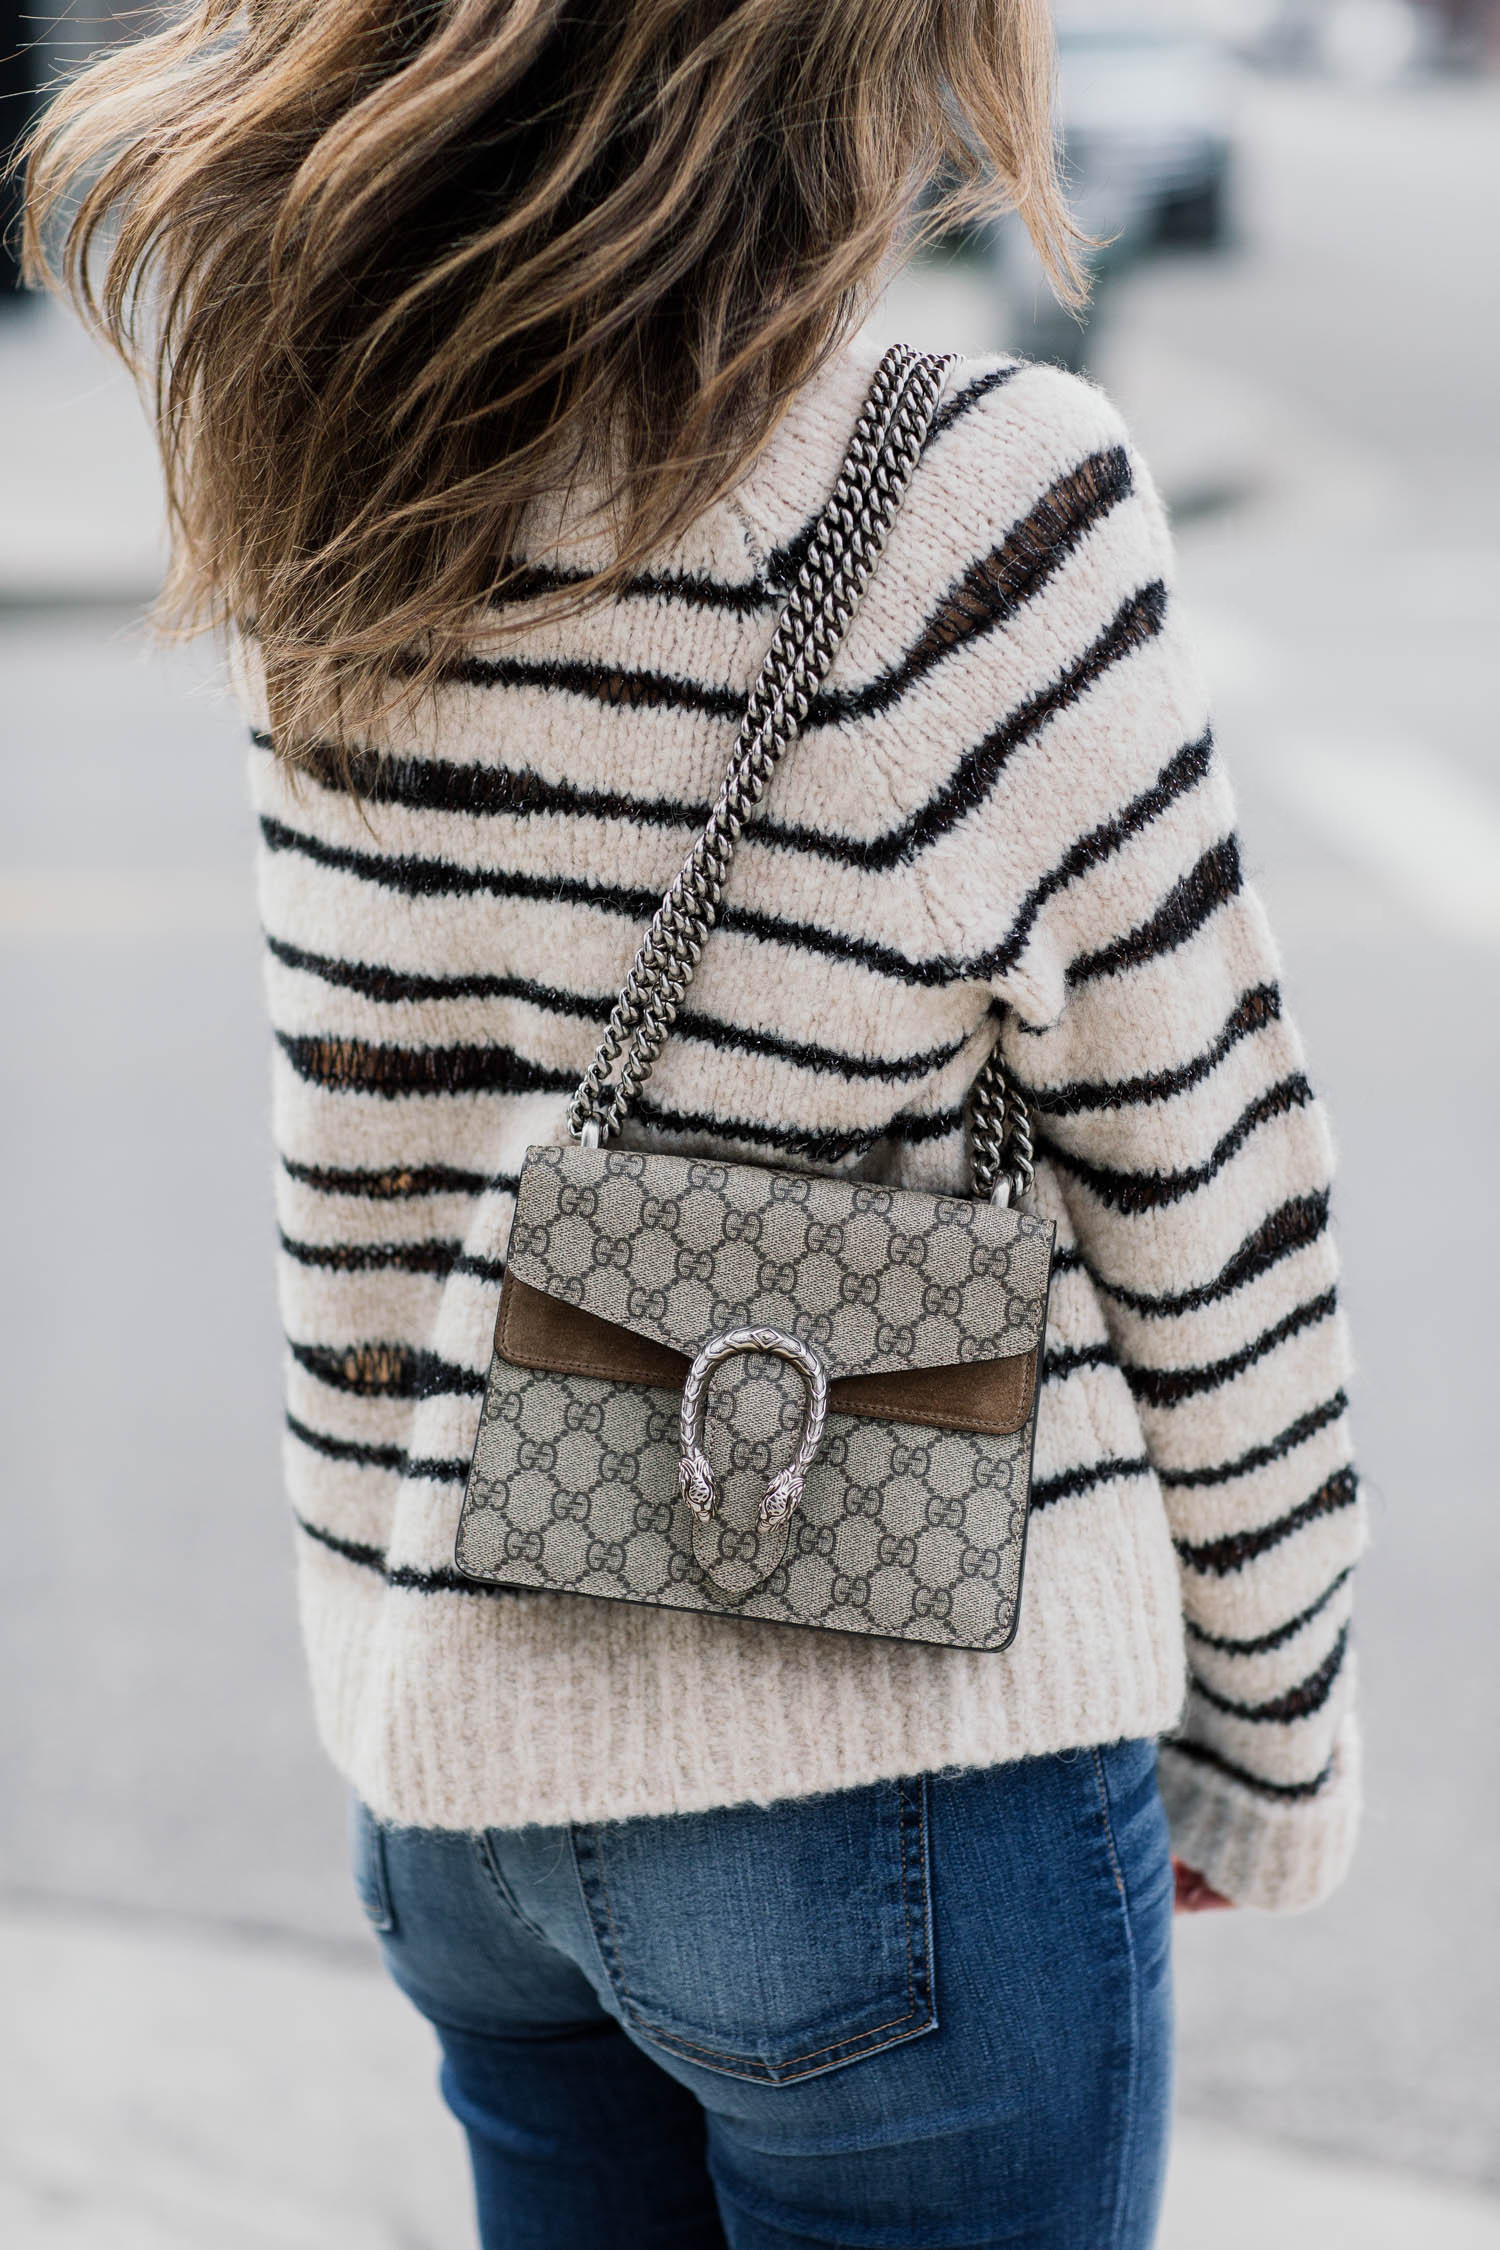 Blogger Sara Azani of Style MBA wearing Zadig and Voltaire white and black knit sweater, 7 For All Mankind crop skinny jeans, Steve Madden Stecy nude high-heeled sandal, Le Specs sunglasses, and a Gucci bag.